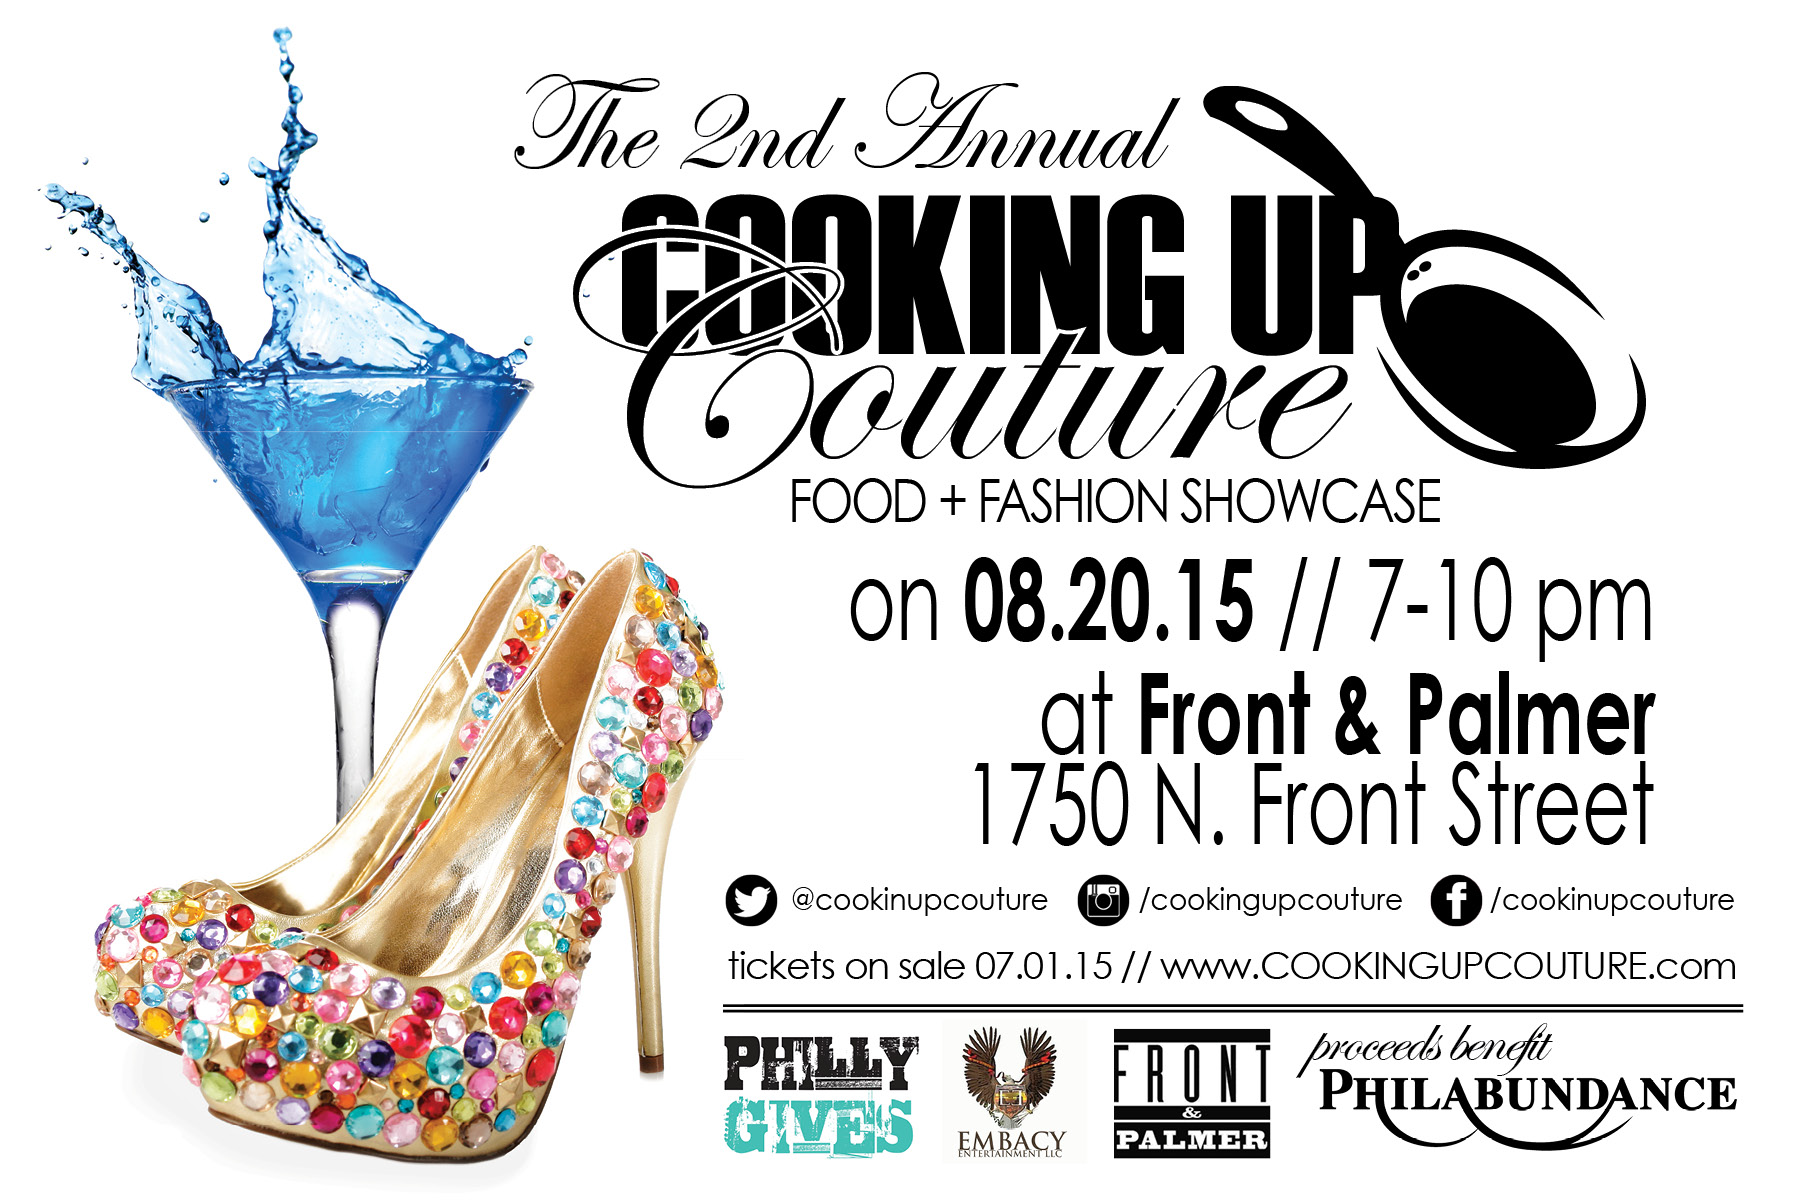 2nd Annual Cooking Up Couture Food & Fashion Showcase.